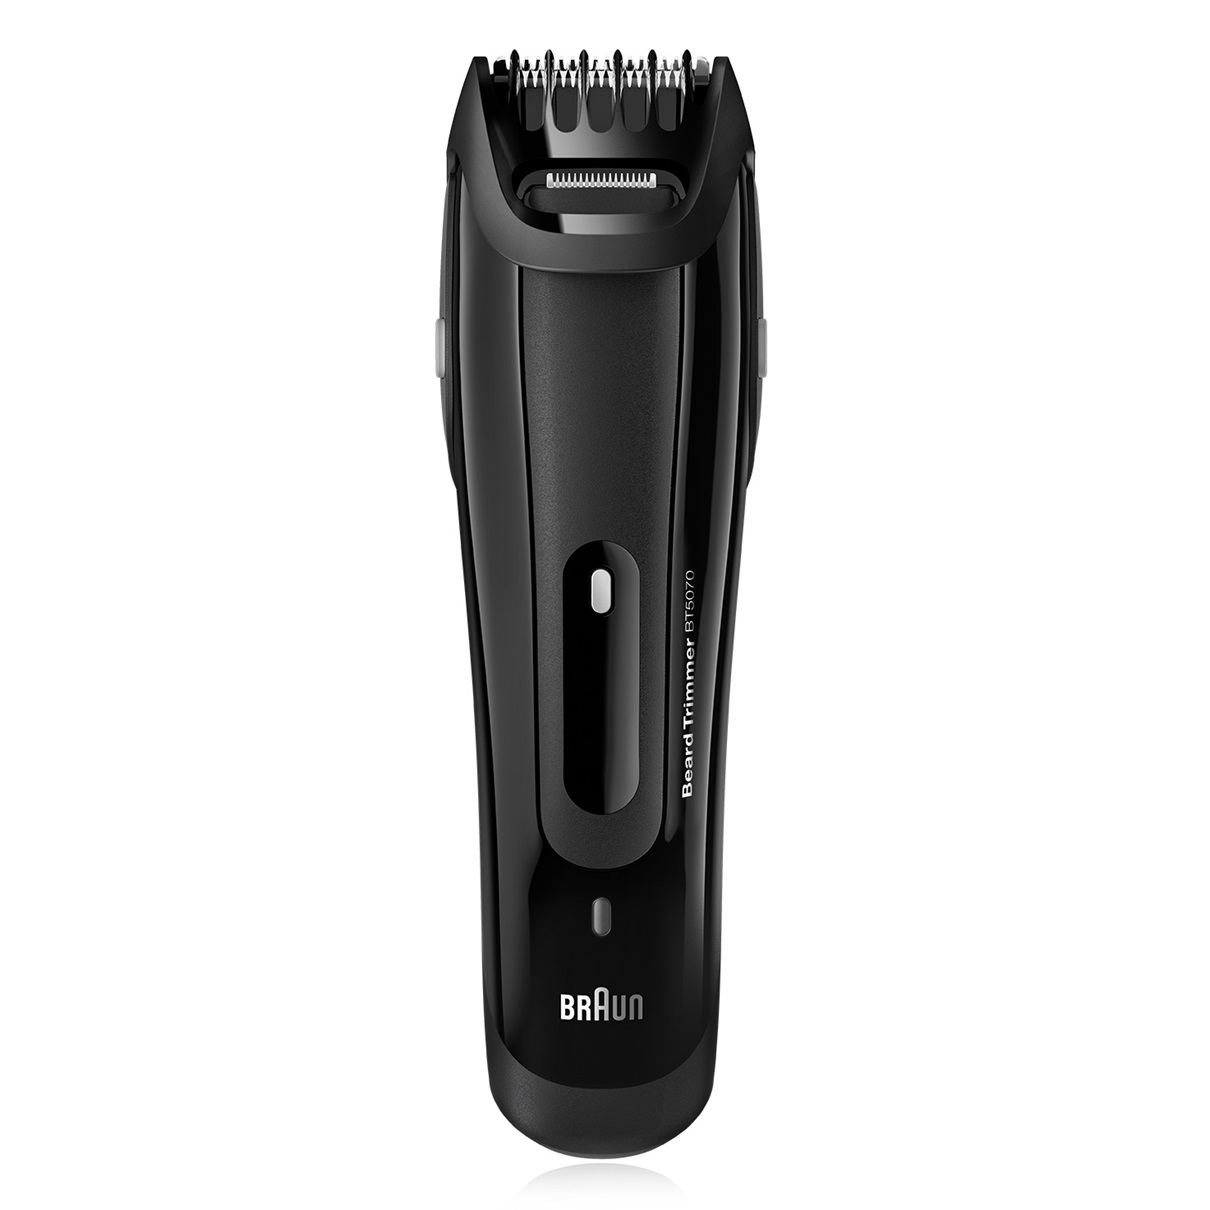 Braun beard trimmer BT5070 - packaging